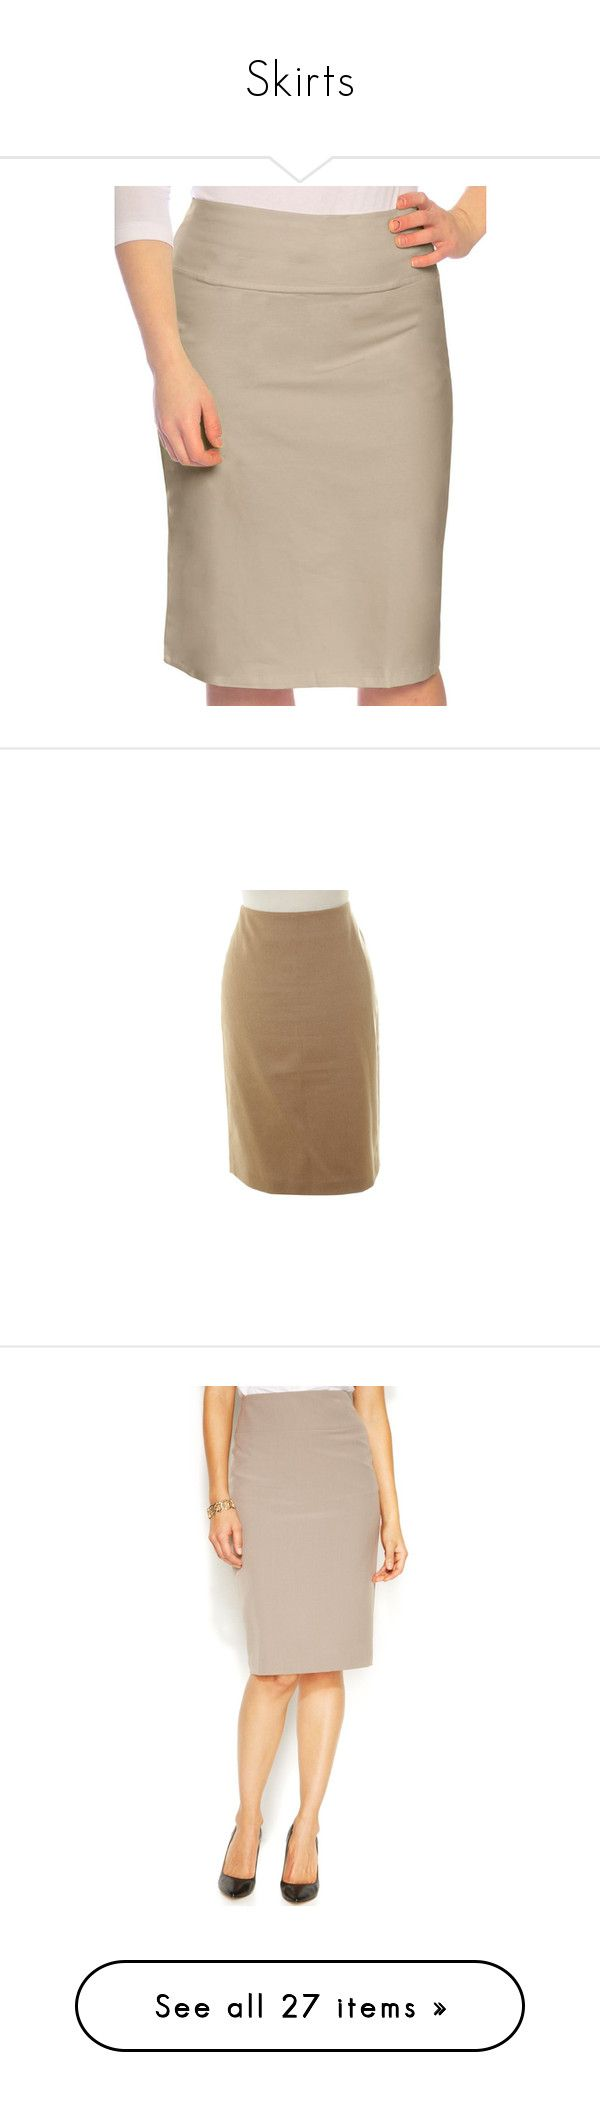 Skirts by cinthya-lescano on Polyvore featuring polyvore, women's fashion, clothing, skirts, beige, straight pencil skirt, kosher casual, beige pencil skirt, straight skirt, beige skirt, brown skirt, knee length pencil skirt, pencil skirts, maxmara, washed teak, shiny skirt, pencil skirt, alfani, clearance, holiday skirts, long beige skirt, brown pencil skirt, cotton stretch skirt, peserico, high waisted skirts, high-waist skirt, lulu skirt, high-waisted skirts, high waisted knee length…